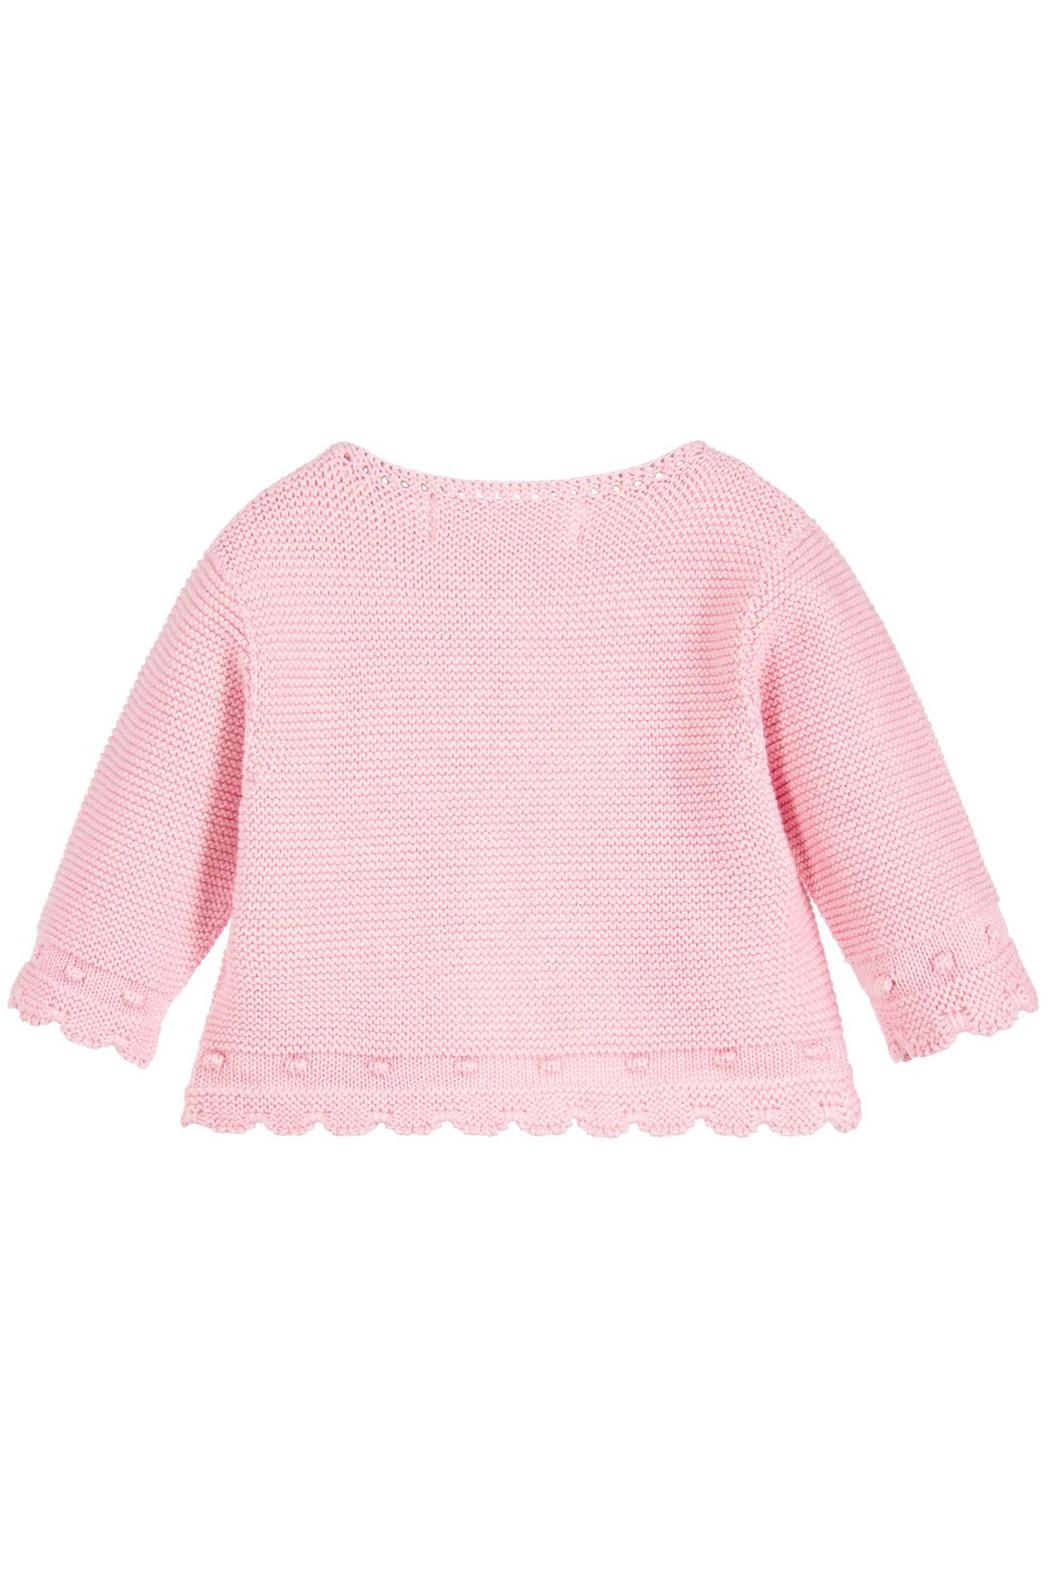 Mayoral Pink Sweater Cardigan - Front Full Image